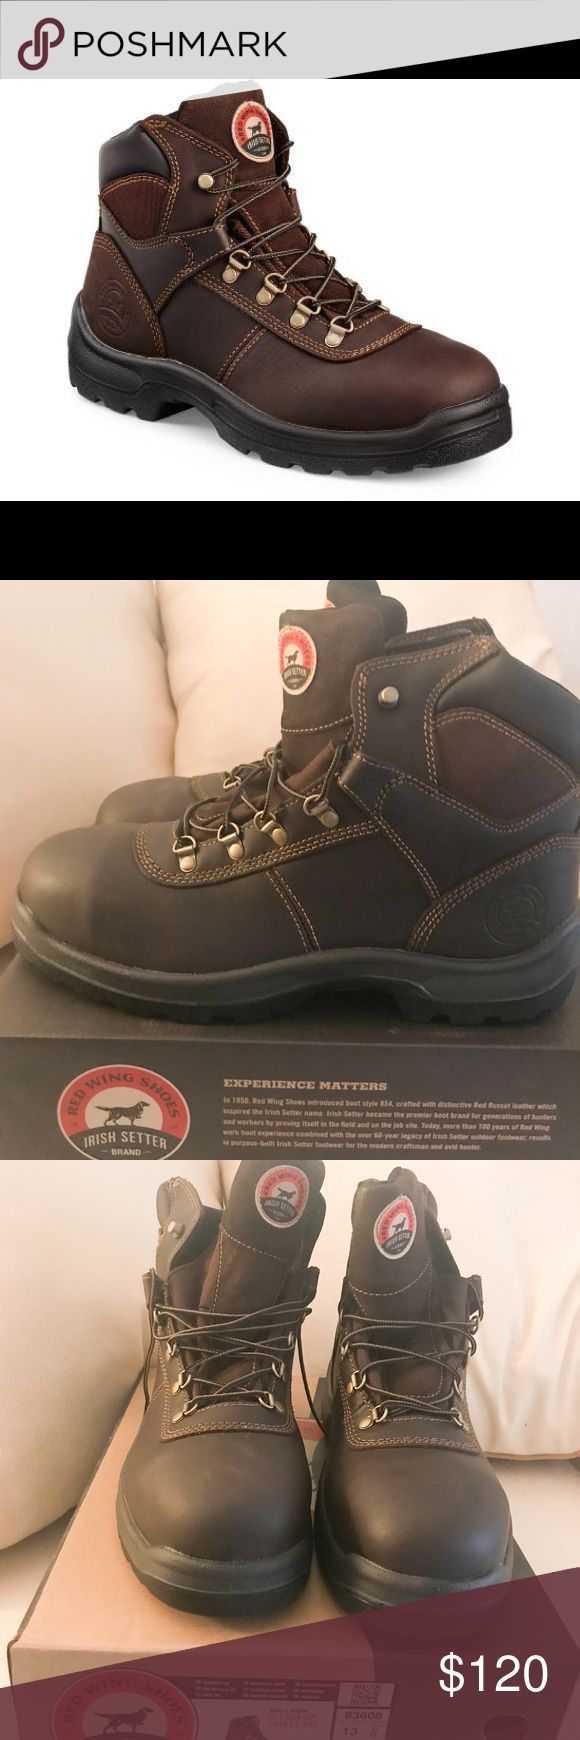 🆕 Men's 6-inch Steel safety toe Leather Work boot Red wing Irish setter brand 🆕 Men's 6-inch Steel safety toe Leather Work boot. Brand NEW in box. Never been worn.   Full grain leather and direct attach sole Durable and all day comfort Irish Setter Shoes Boots